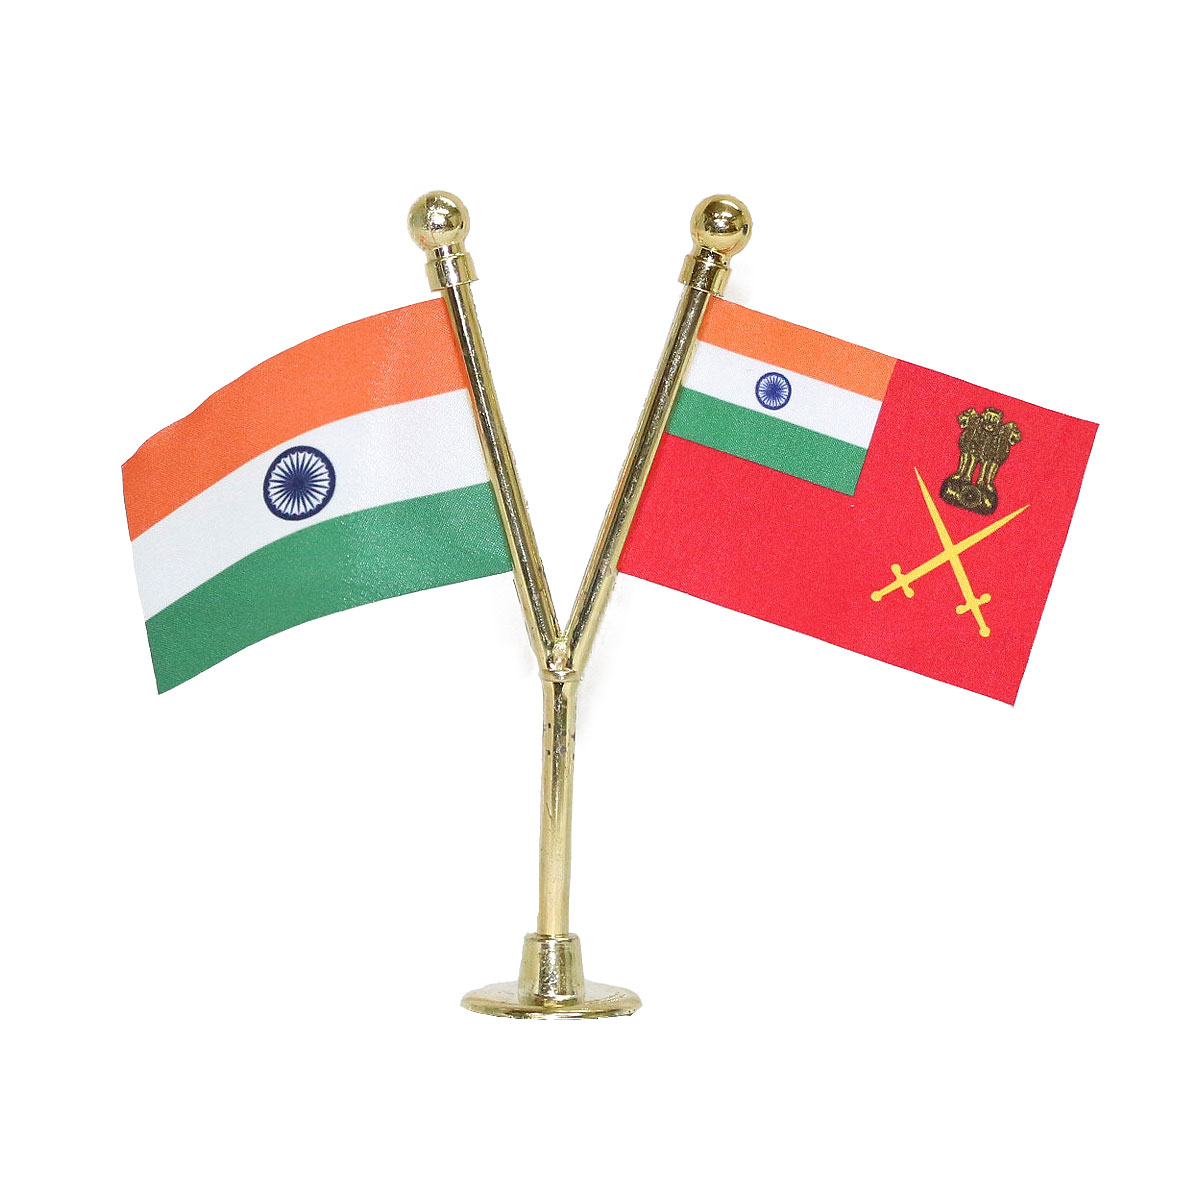 India & Indian Army Miniature Car Dashboard Flag with A Gold-Plated Y-Staff & Nano Base